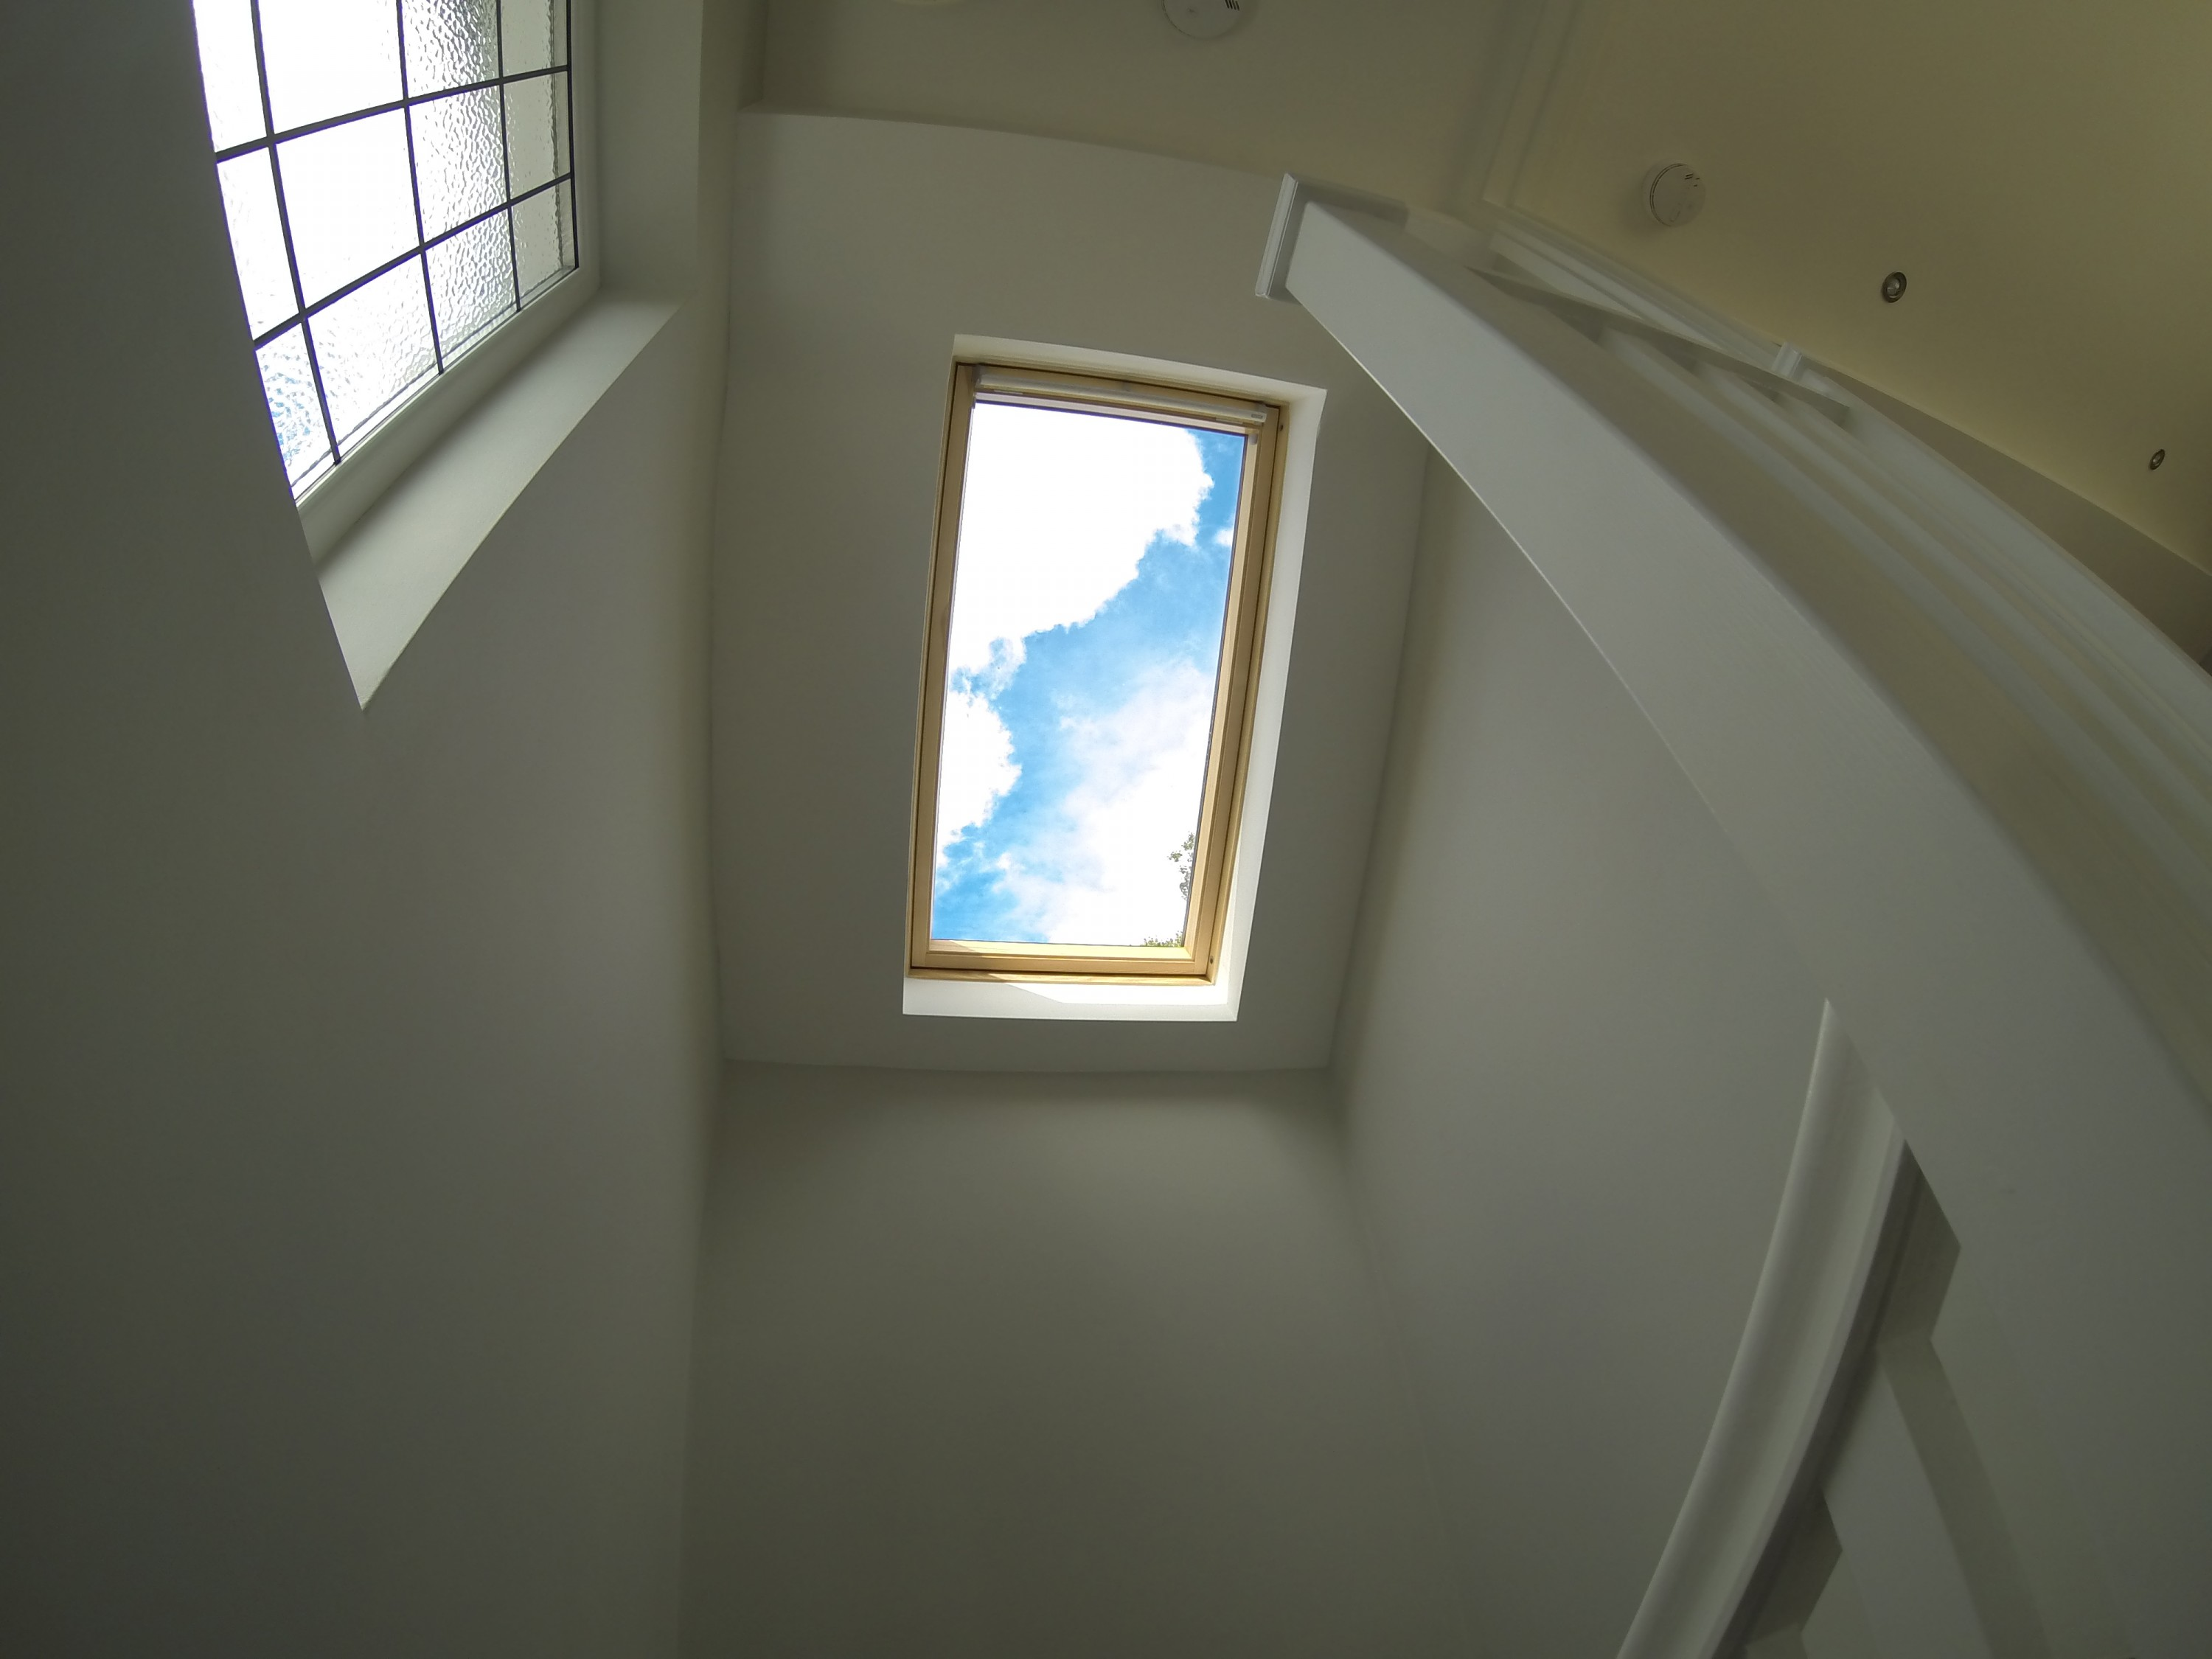 Roof window and gable wall window flooding the stairwell with light